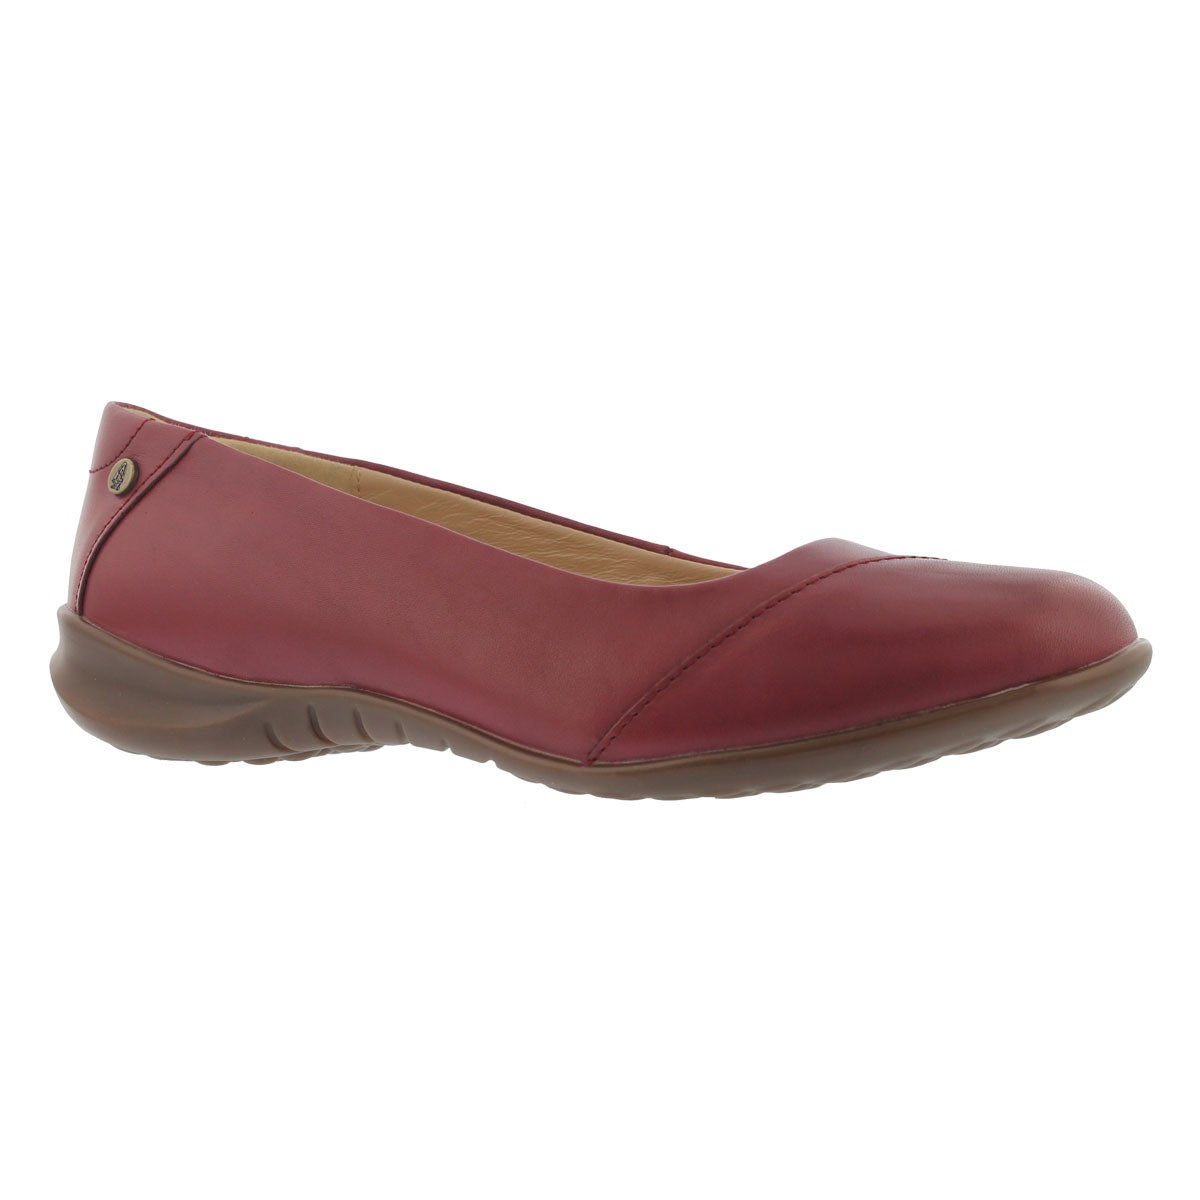 Women's LINNET BRIA dark red casual flats